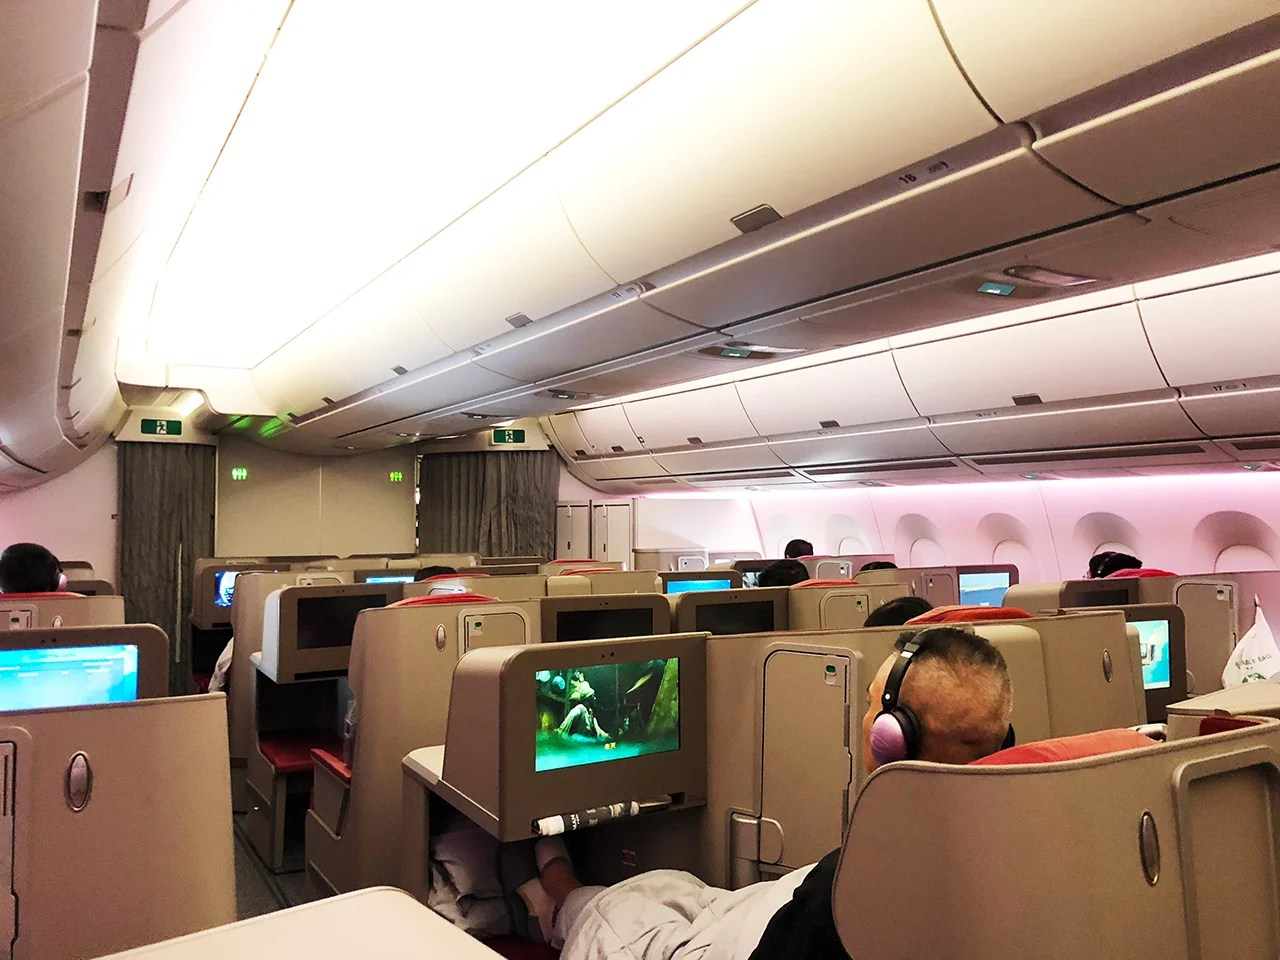 Review: Hong Kong Airlines (A350-900) Biz From LAX to HKG